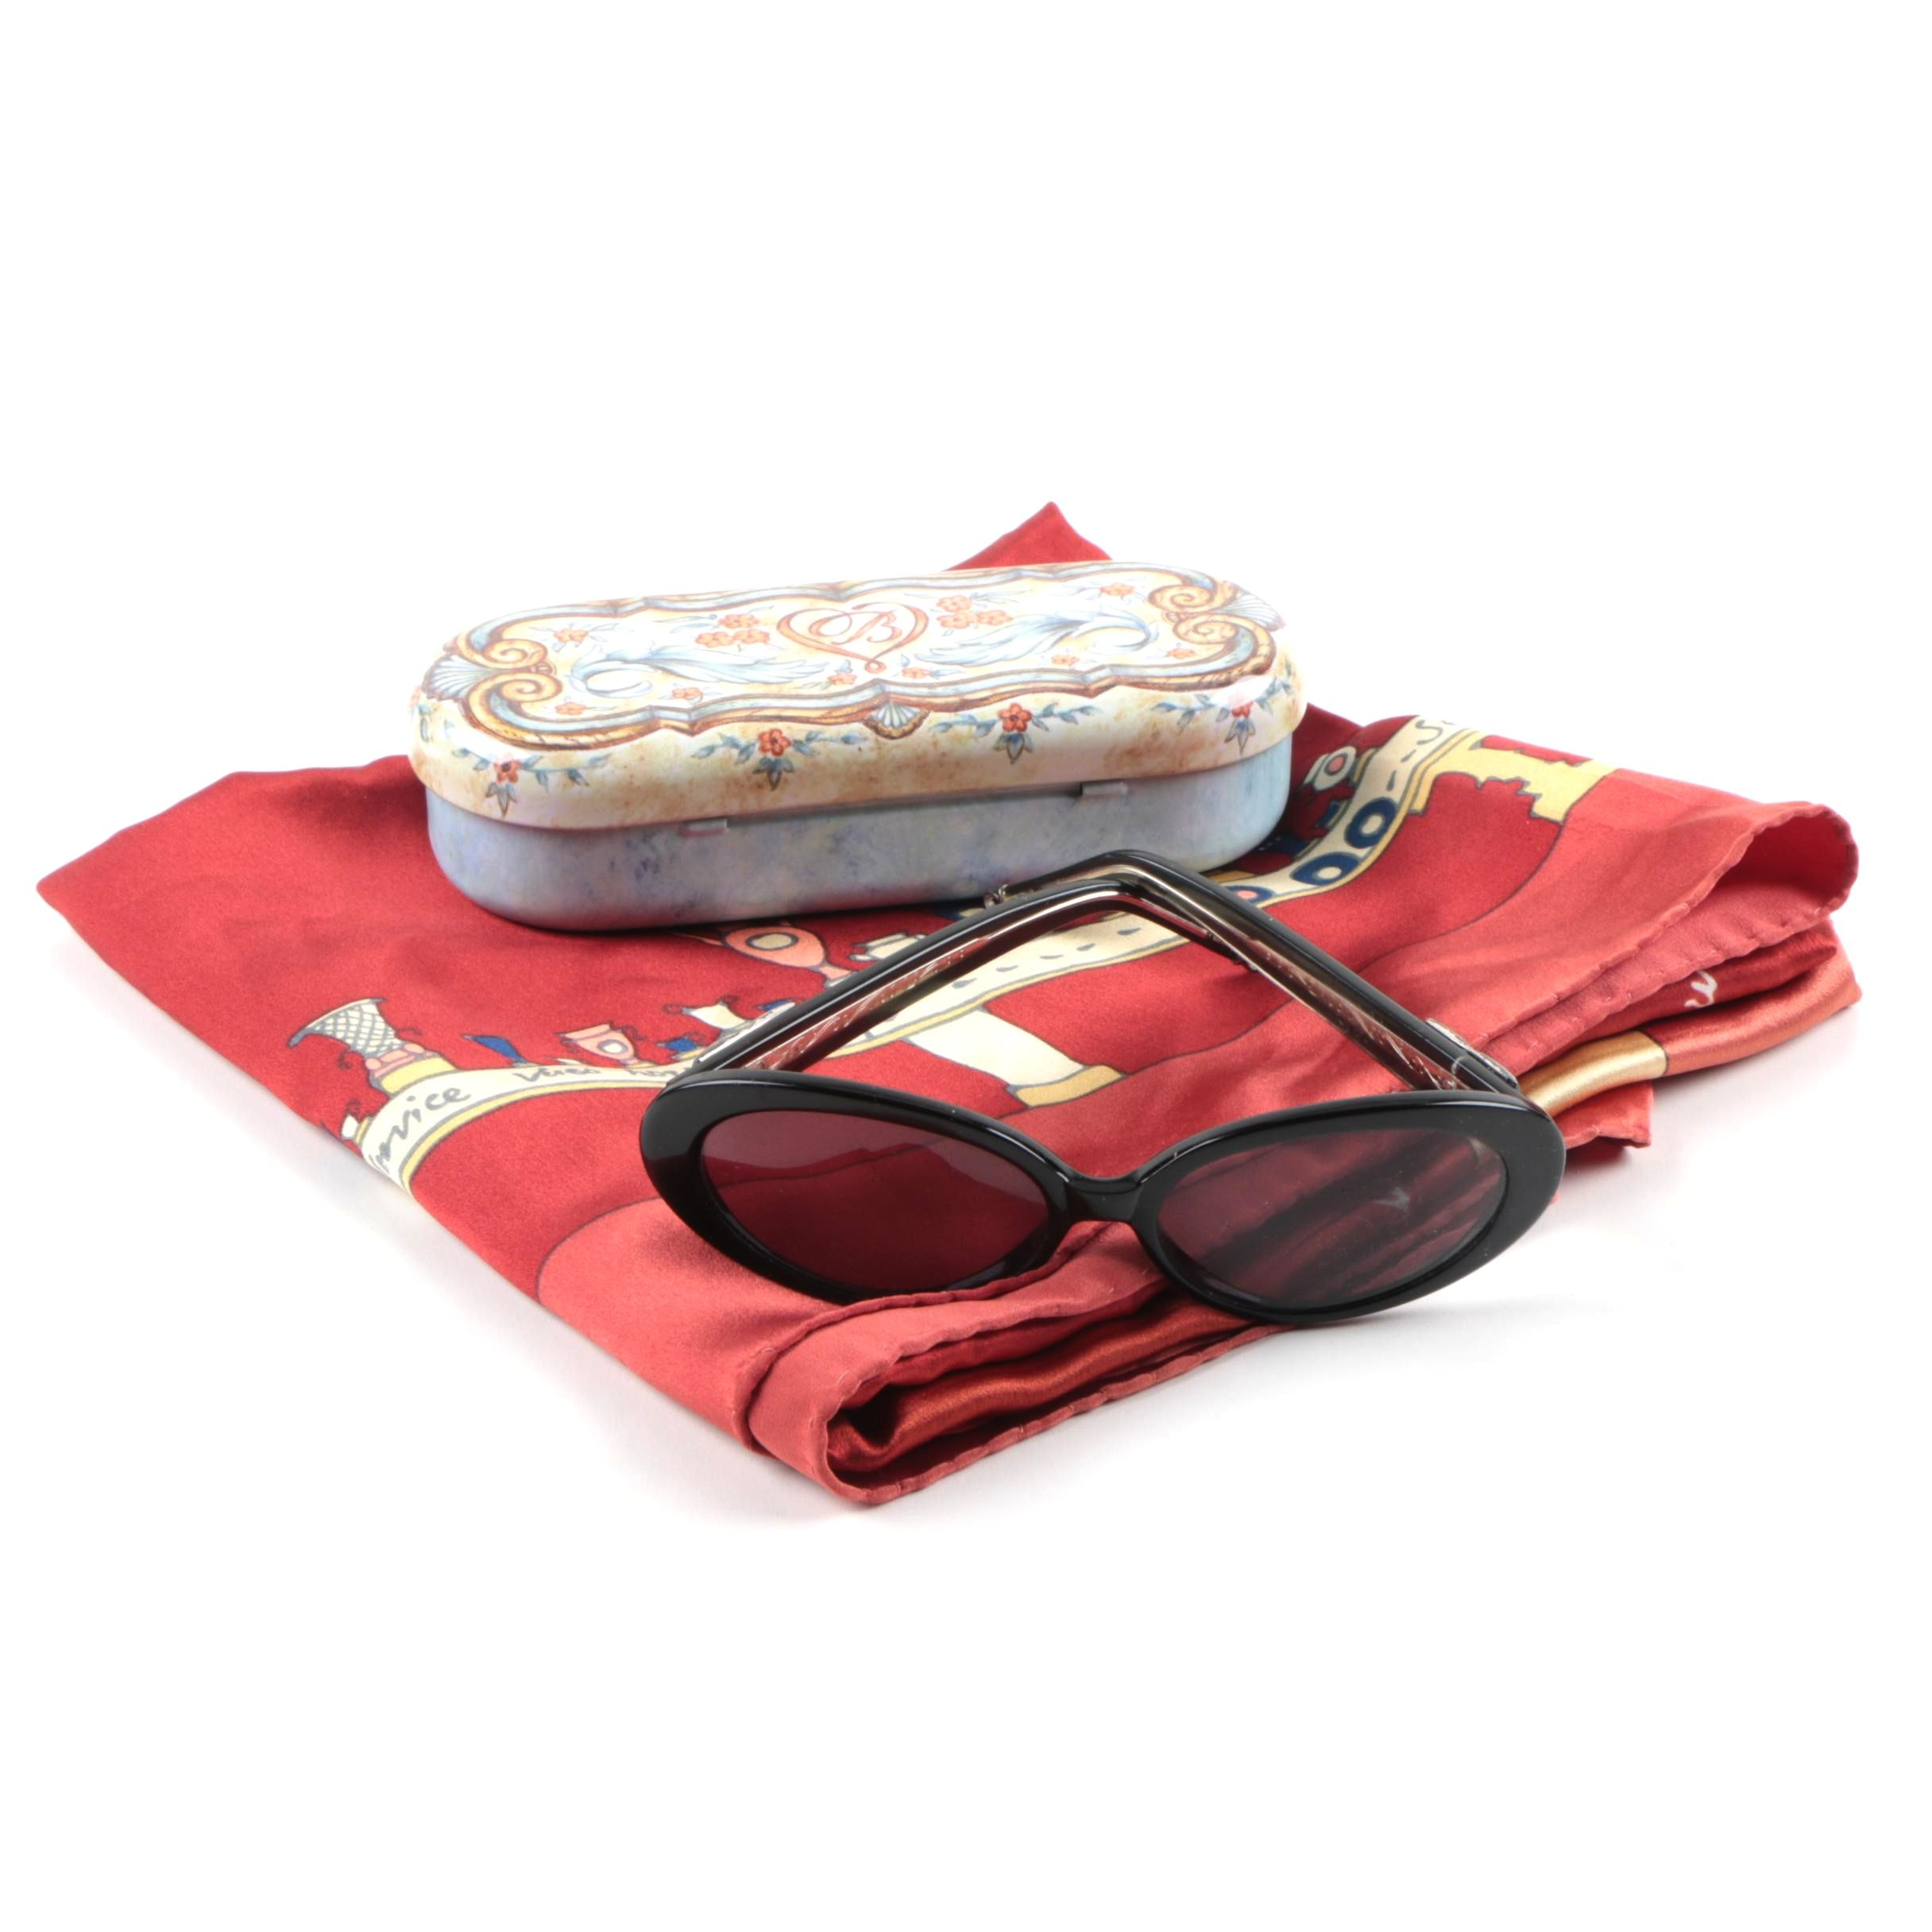 Brighton Sunglasses and Reunion des Musee Nationaux Silk Scarf